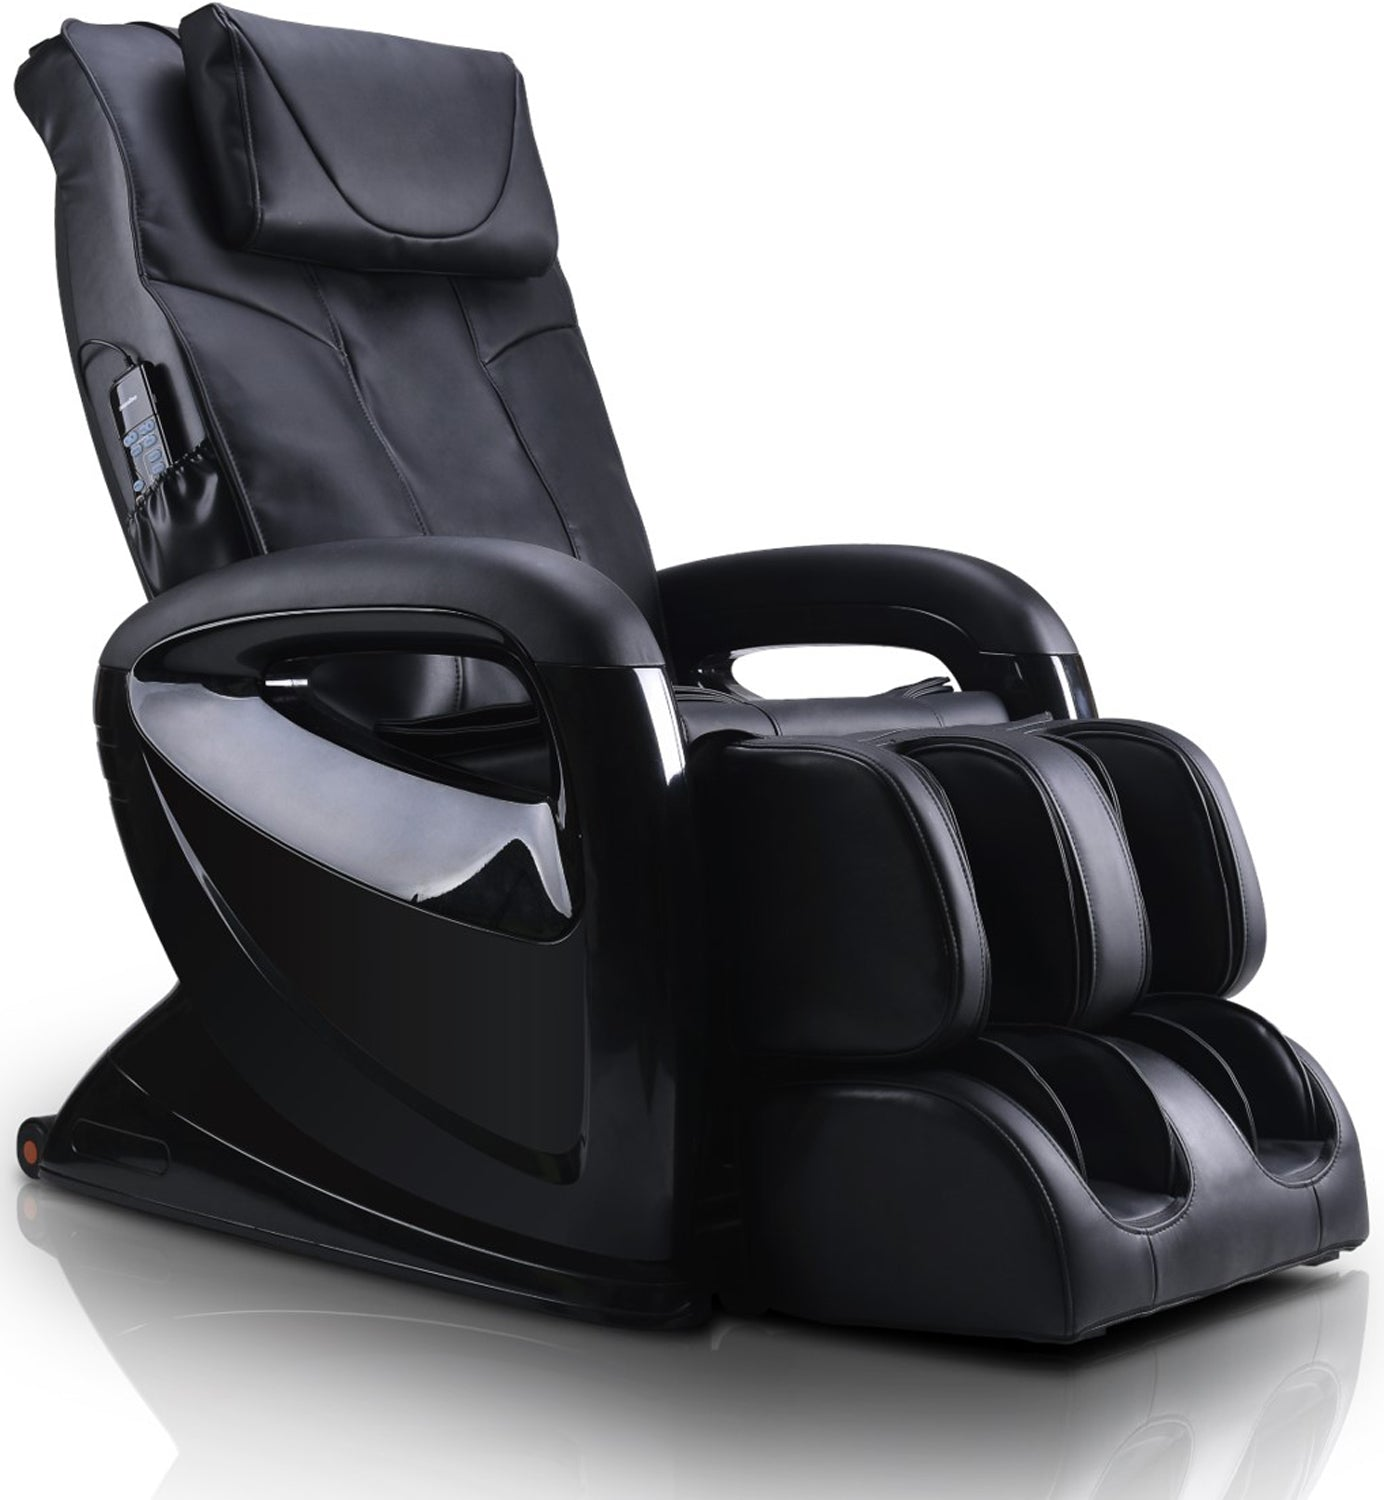 zero gravity recliner reviews chairs costco chocolate avon